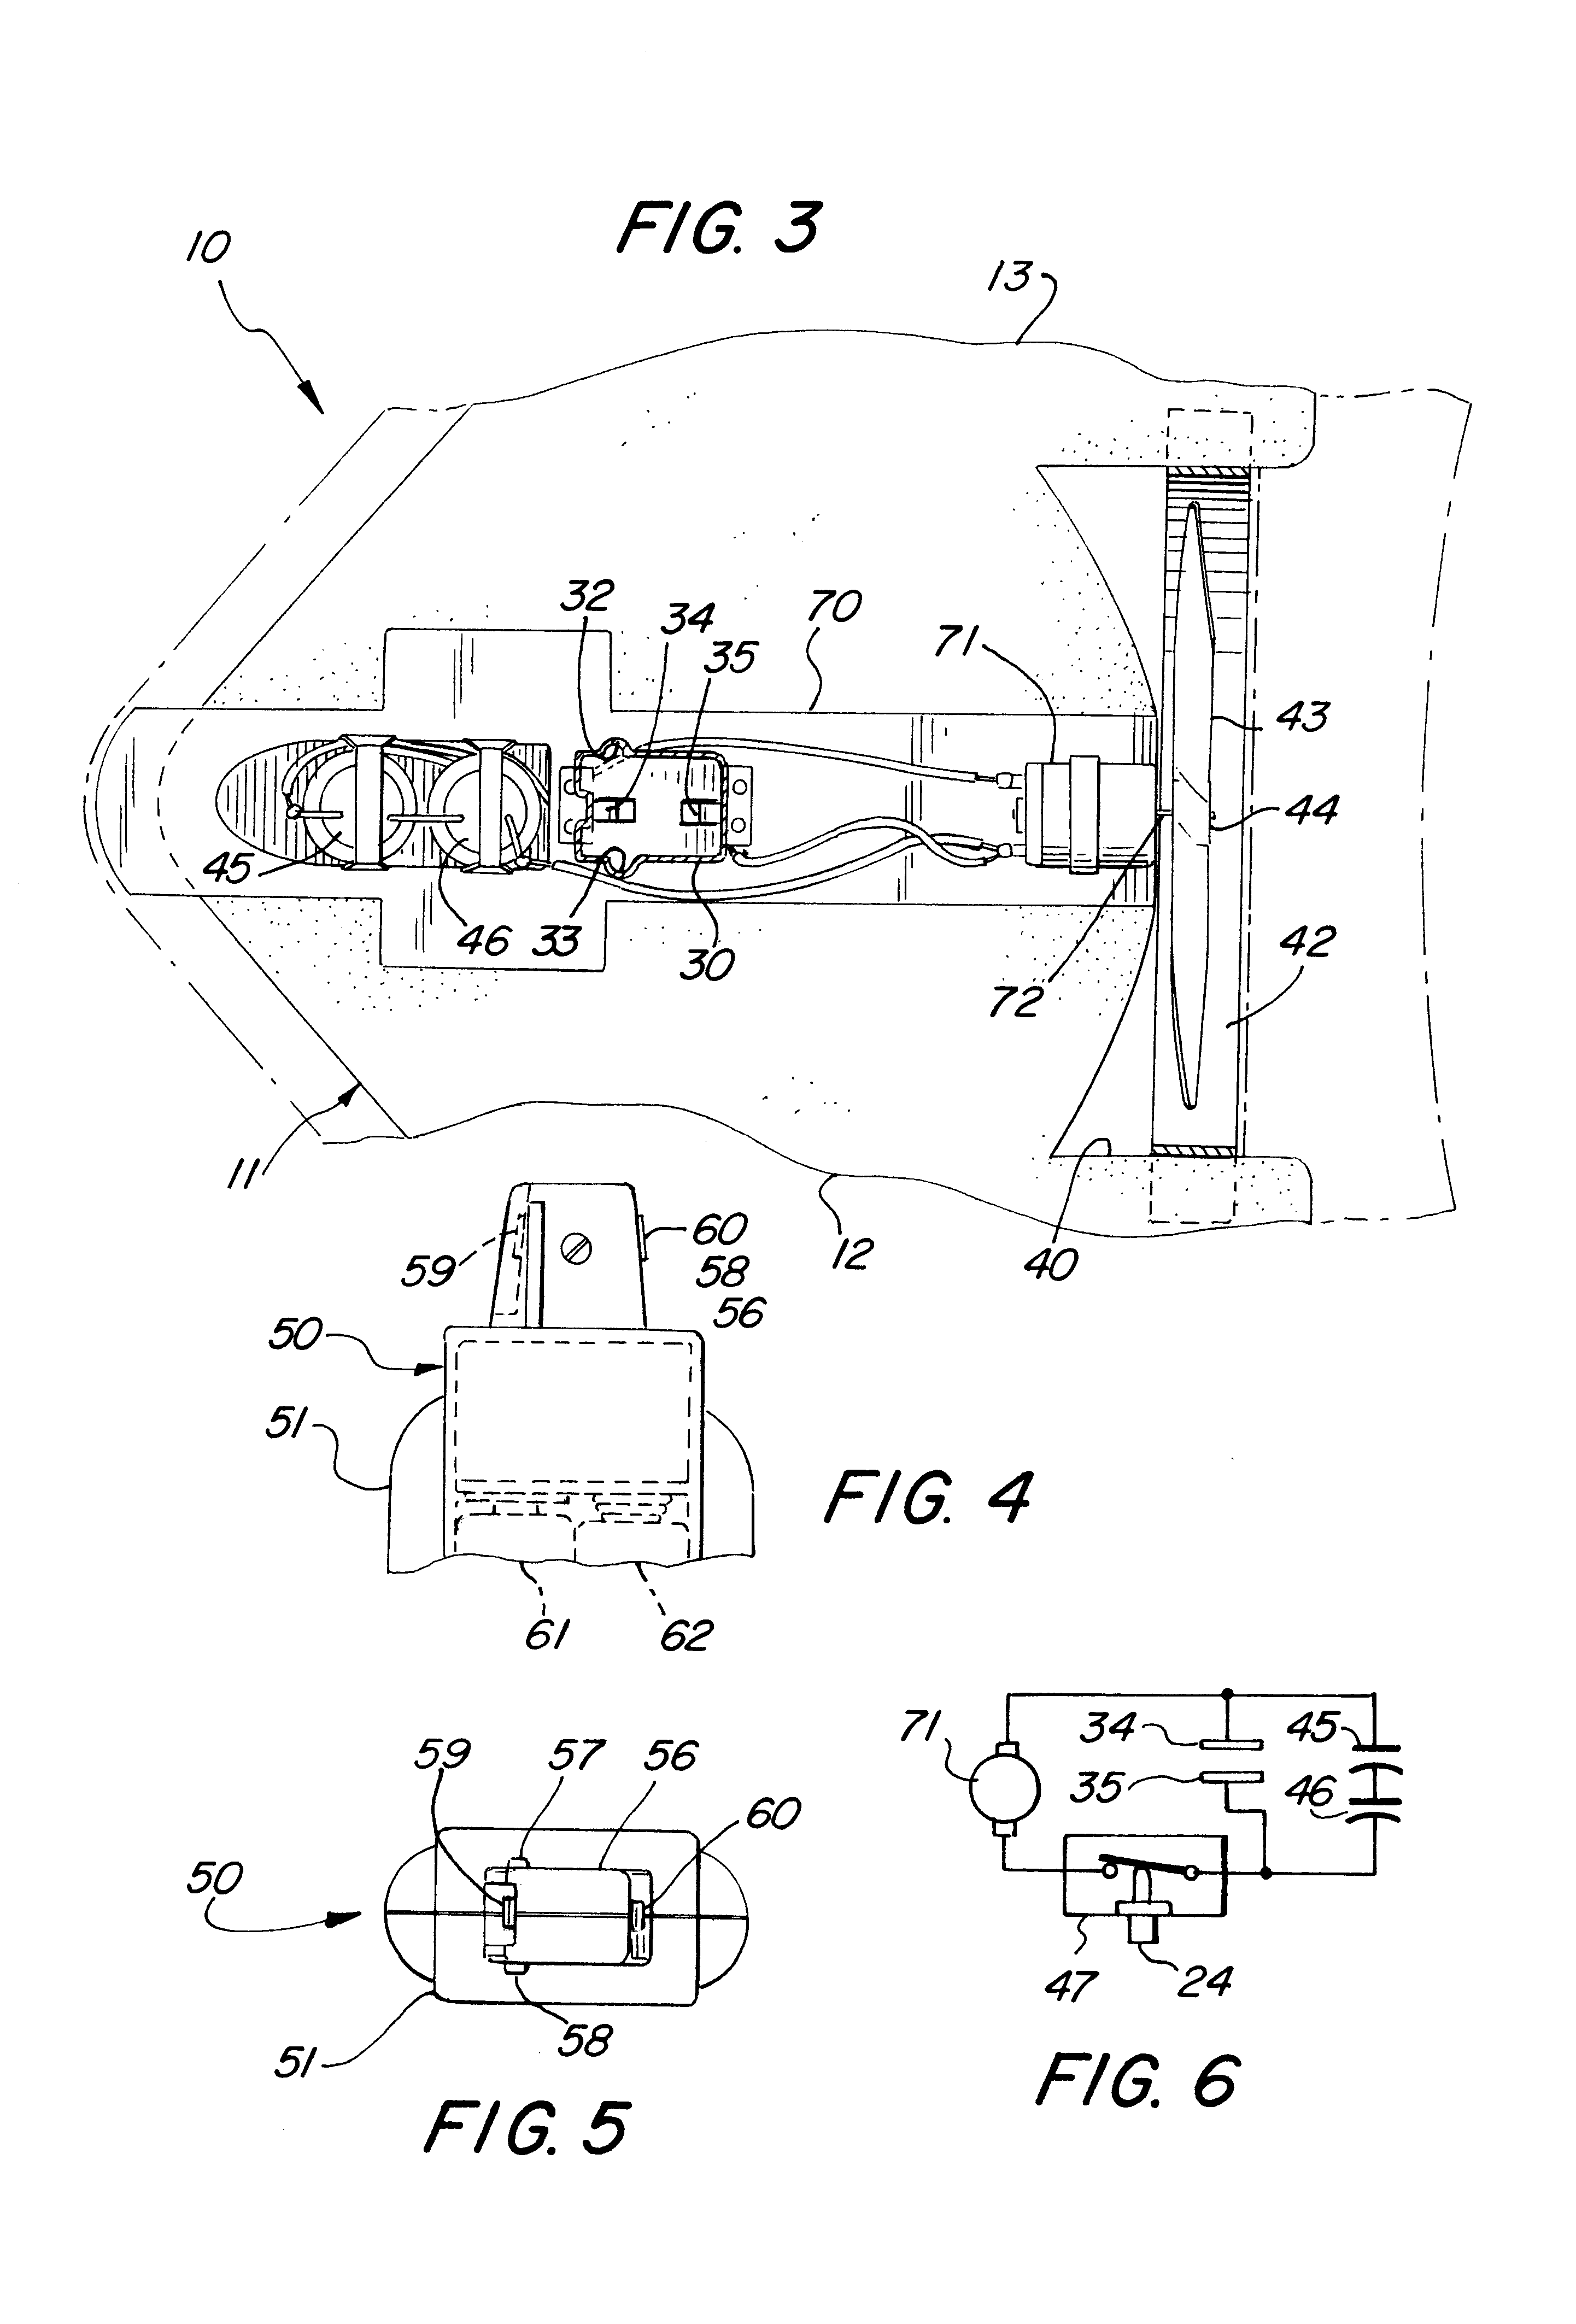 patent us6568980 - toy airplane powered by electric motor and capacitor power source